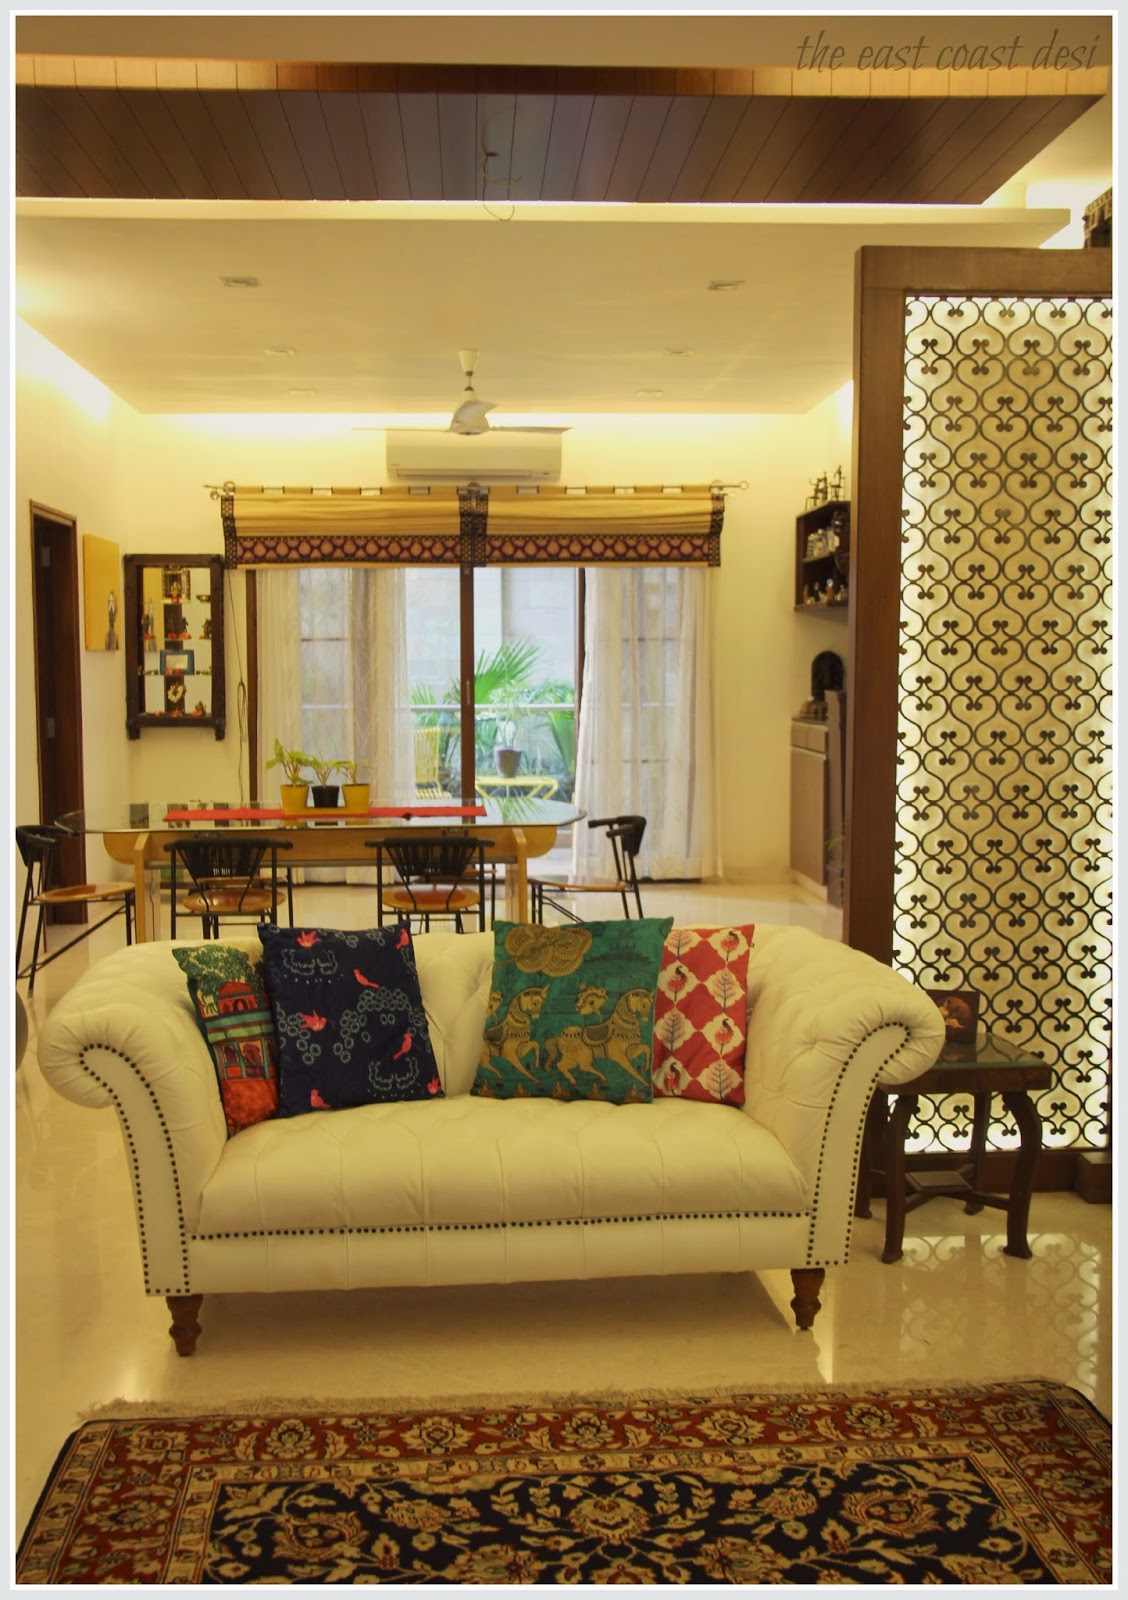 The east coast desi masterful mixing home tour - Living room interior decors ...